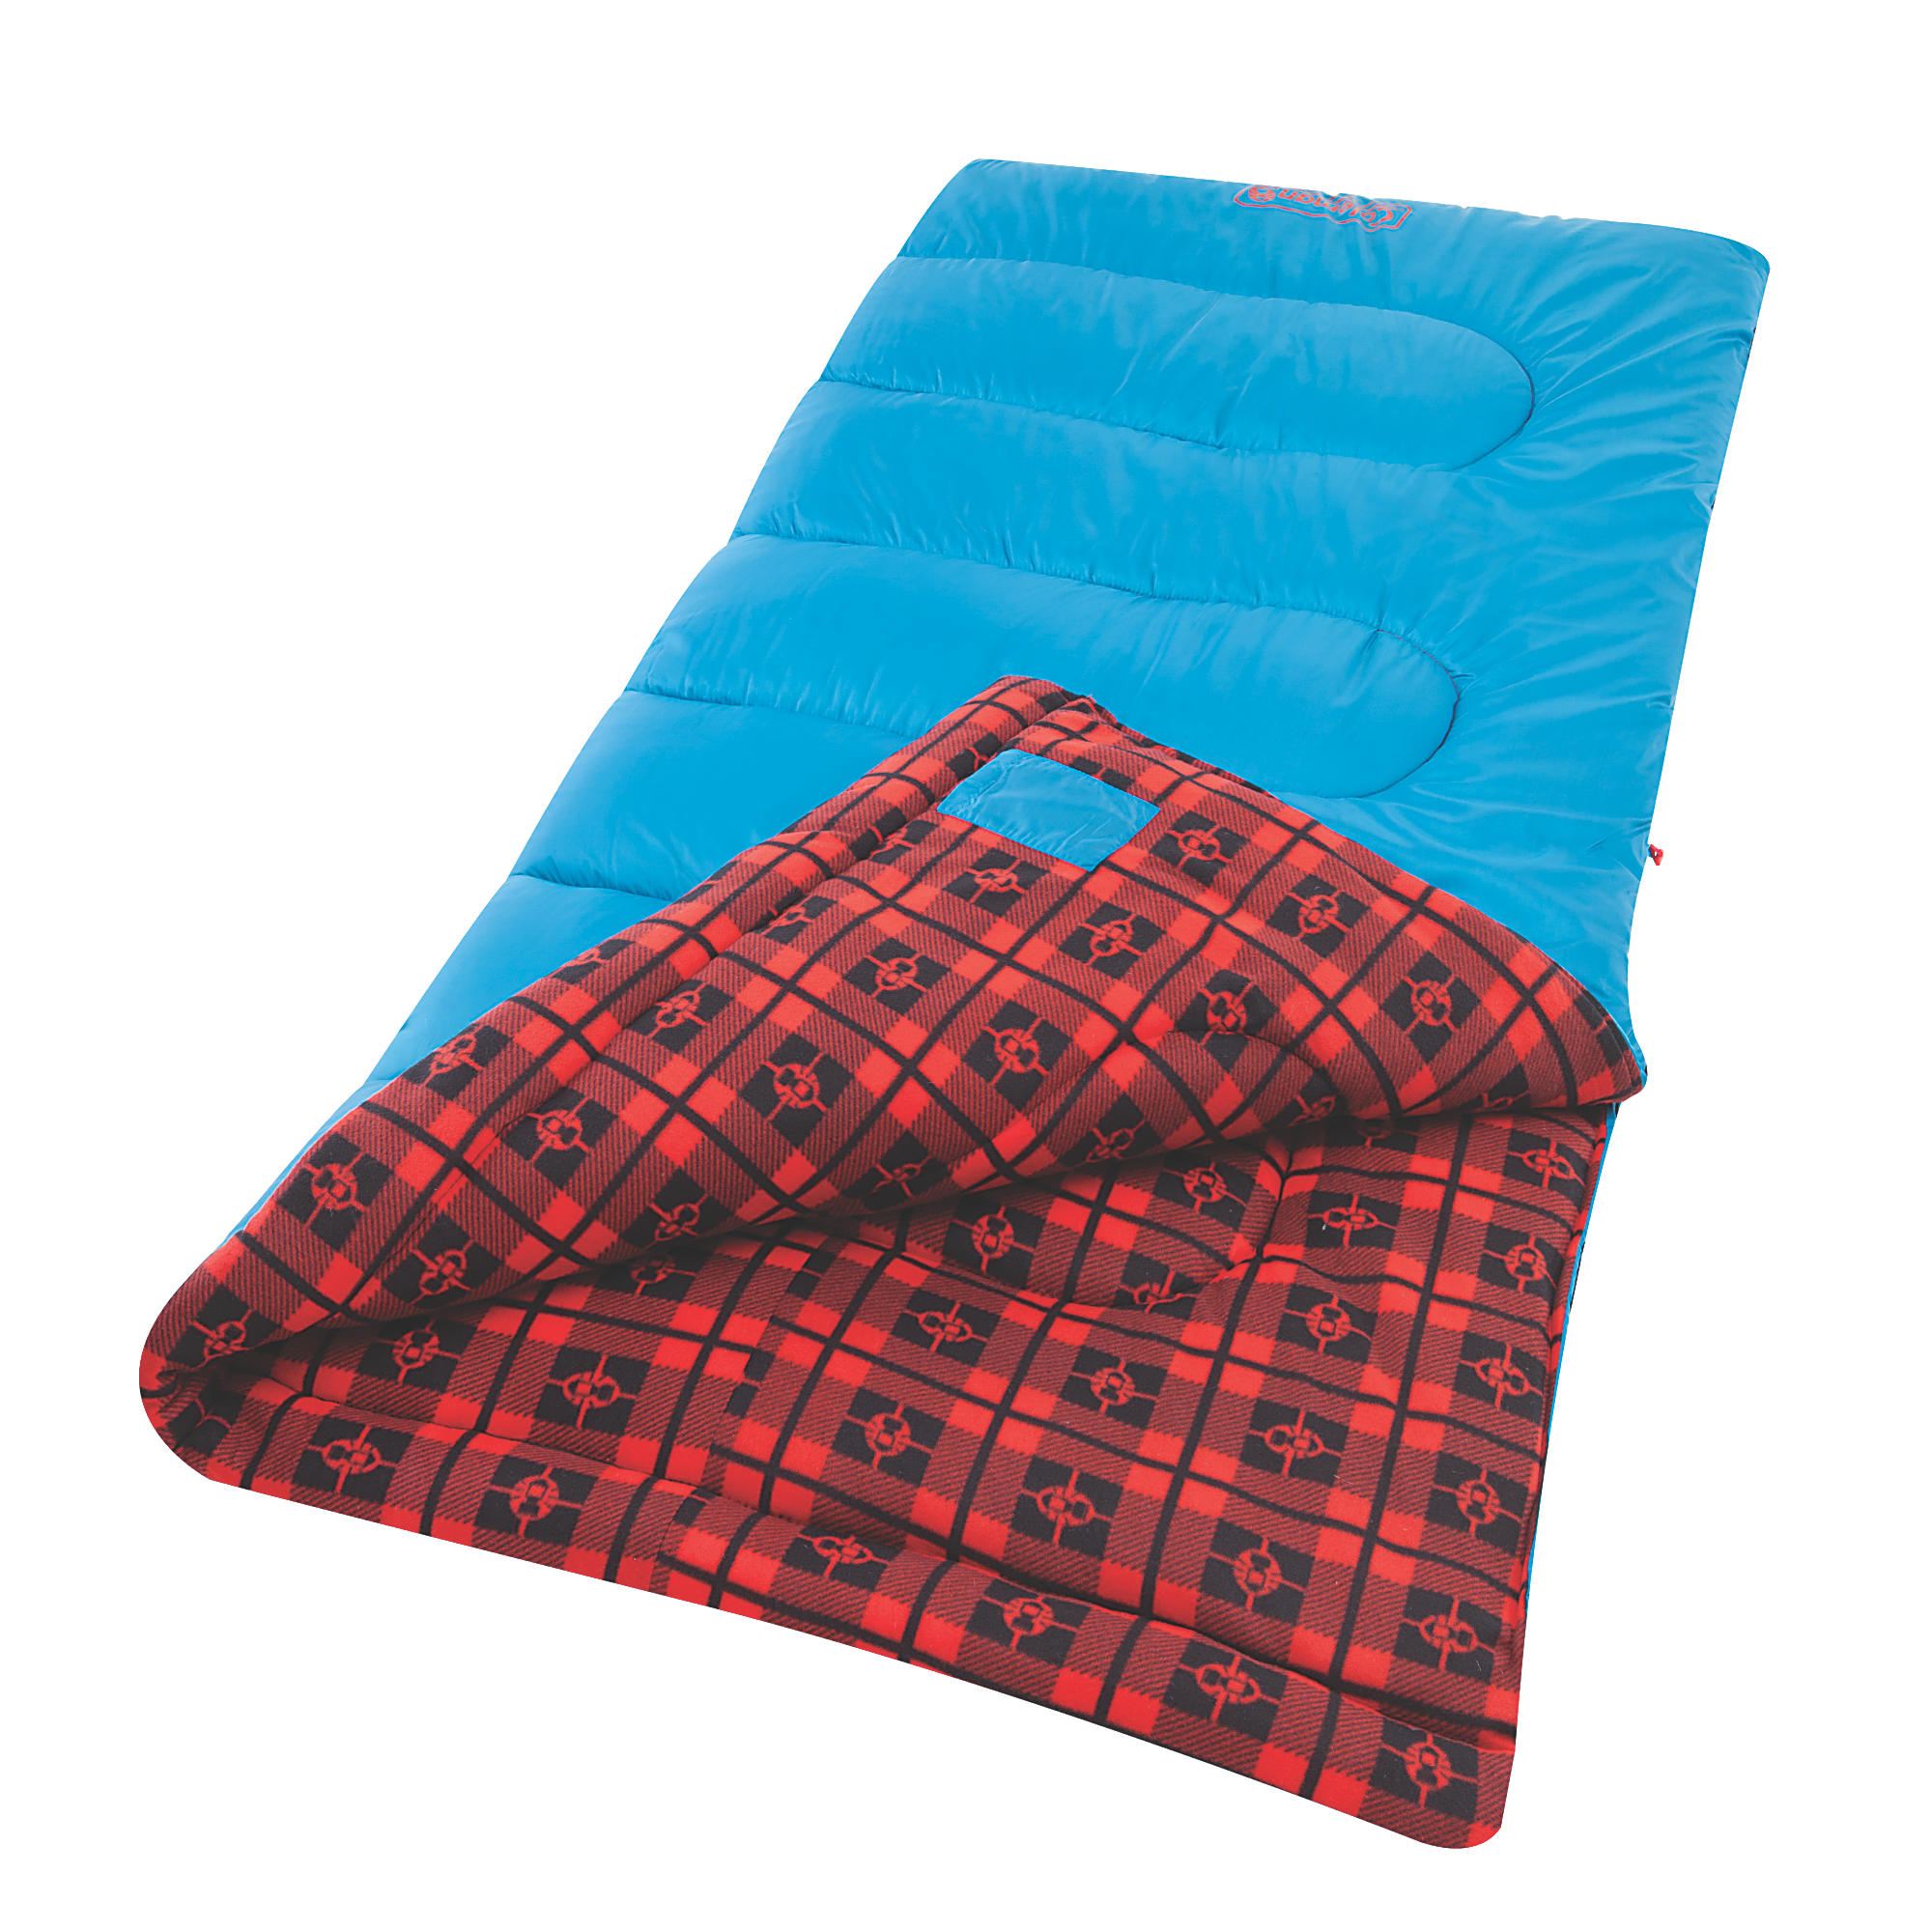 Granite Peak Sleeping Bag